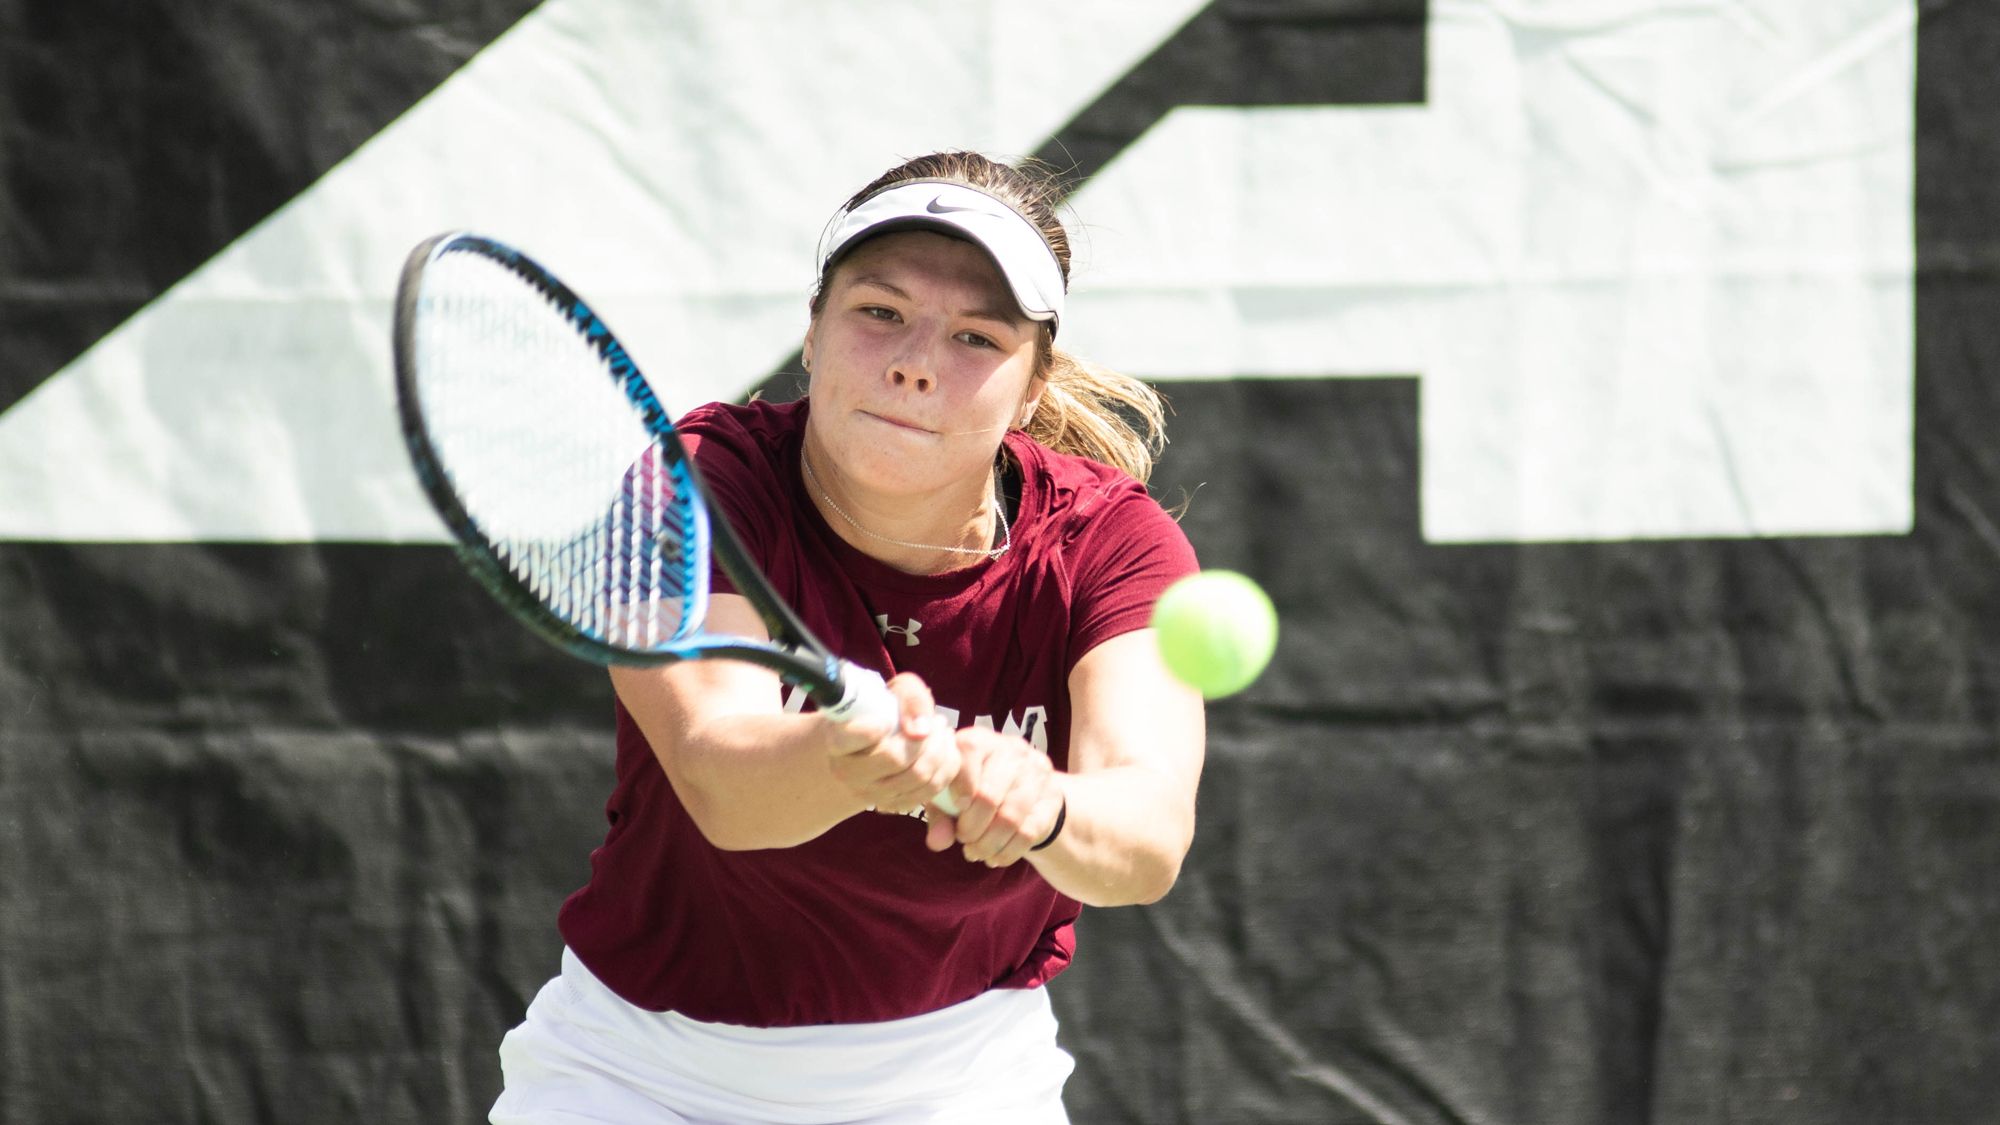 Genevieve Quenville hits a forehand